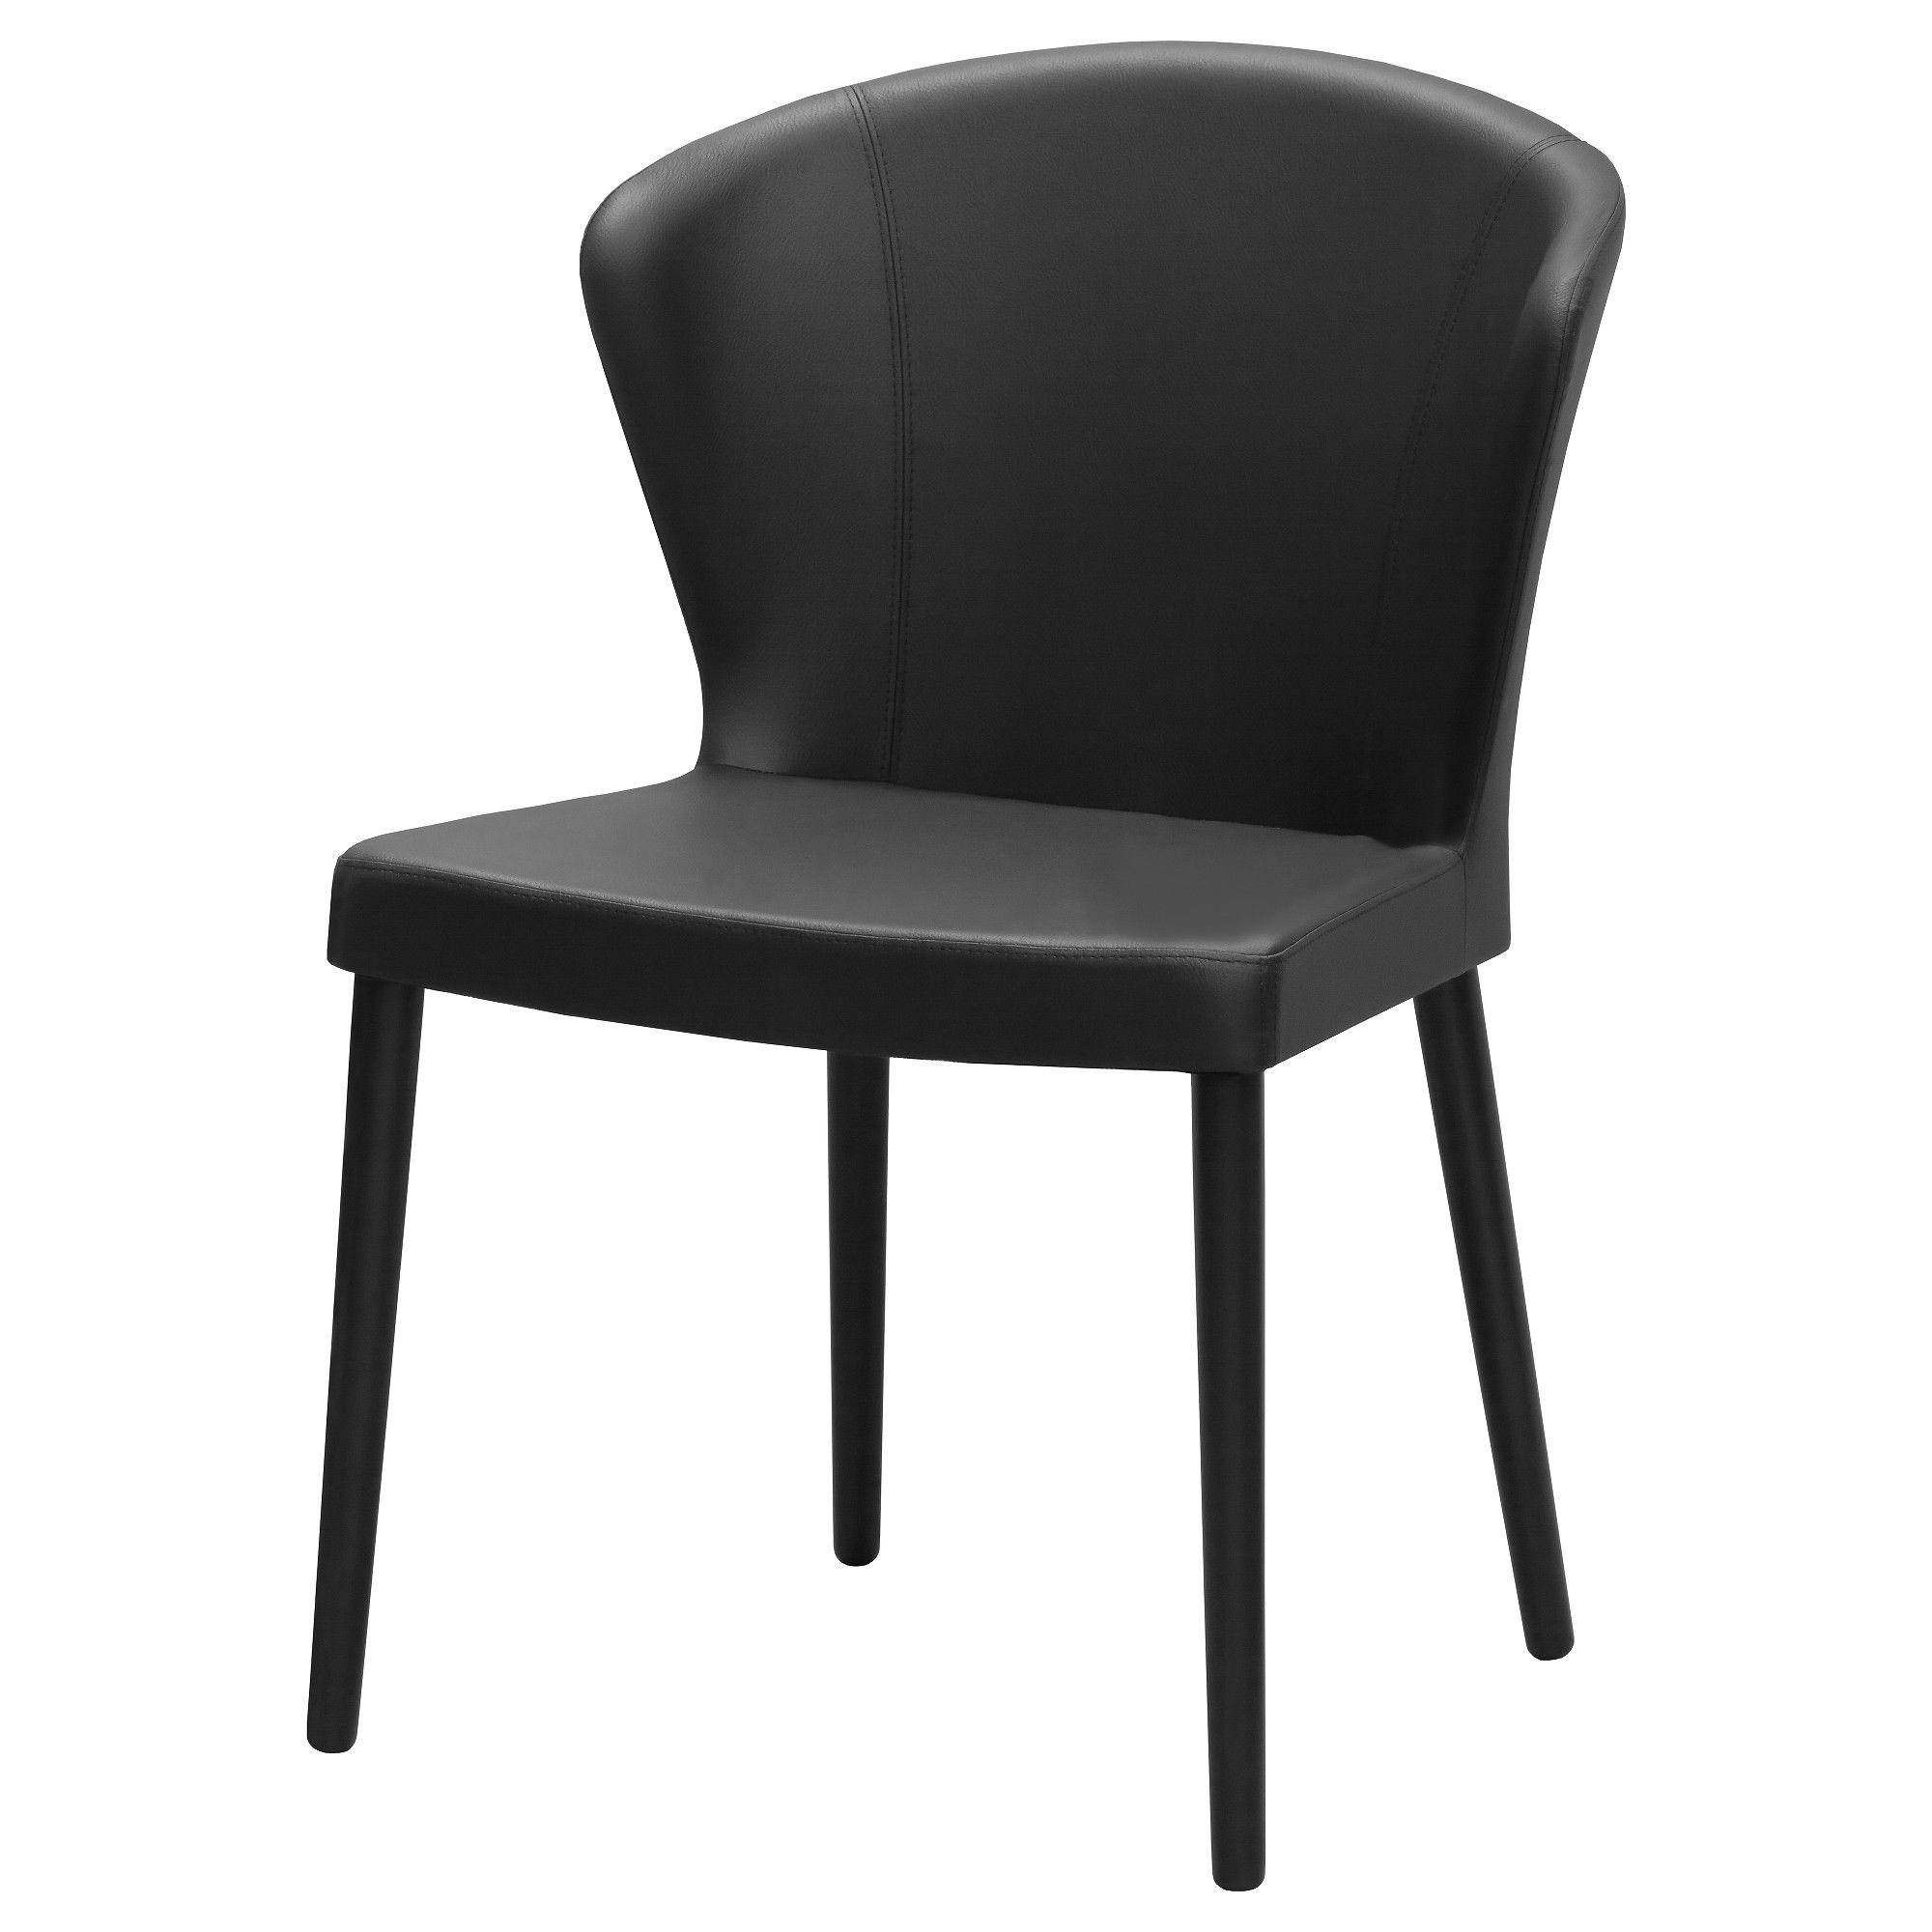 ODDMUND Chair, Idhult black stained, Idhult black